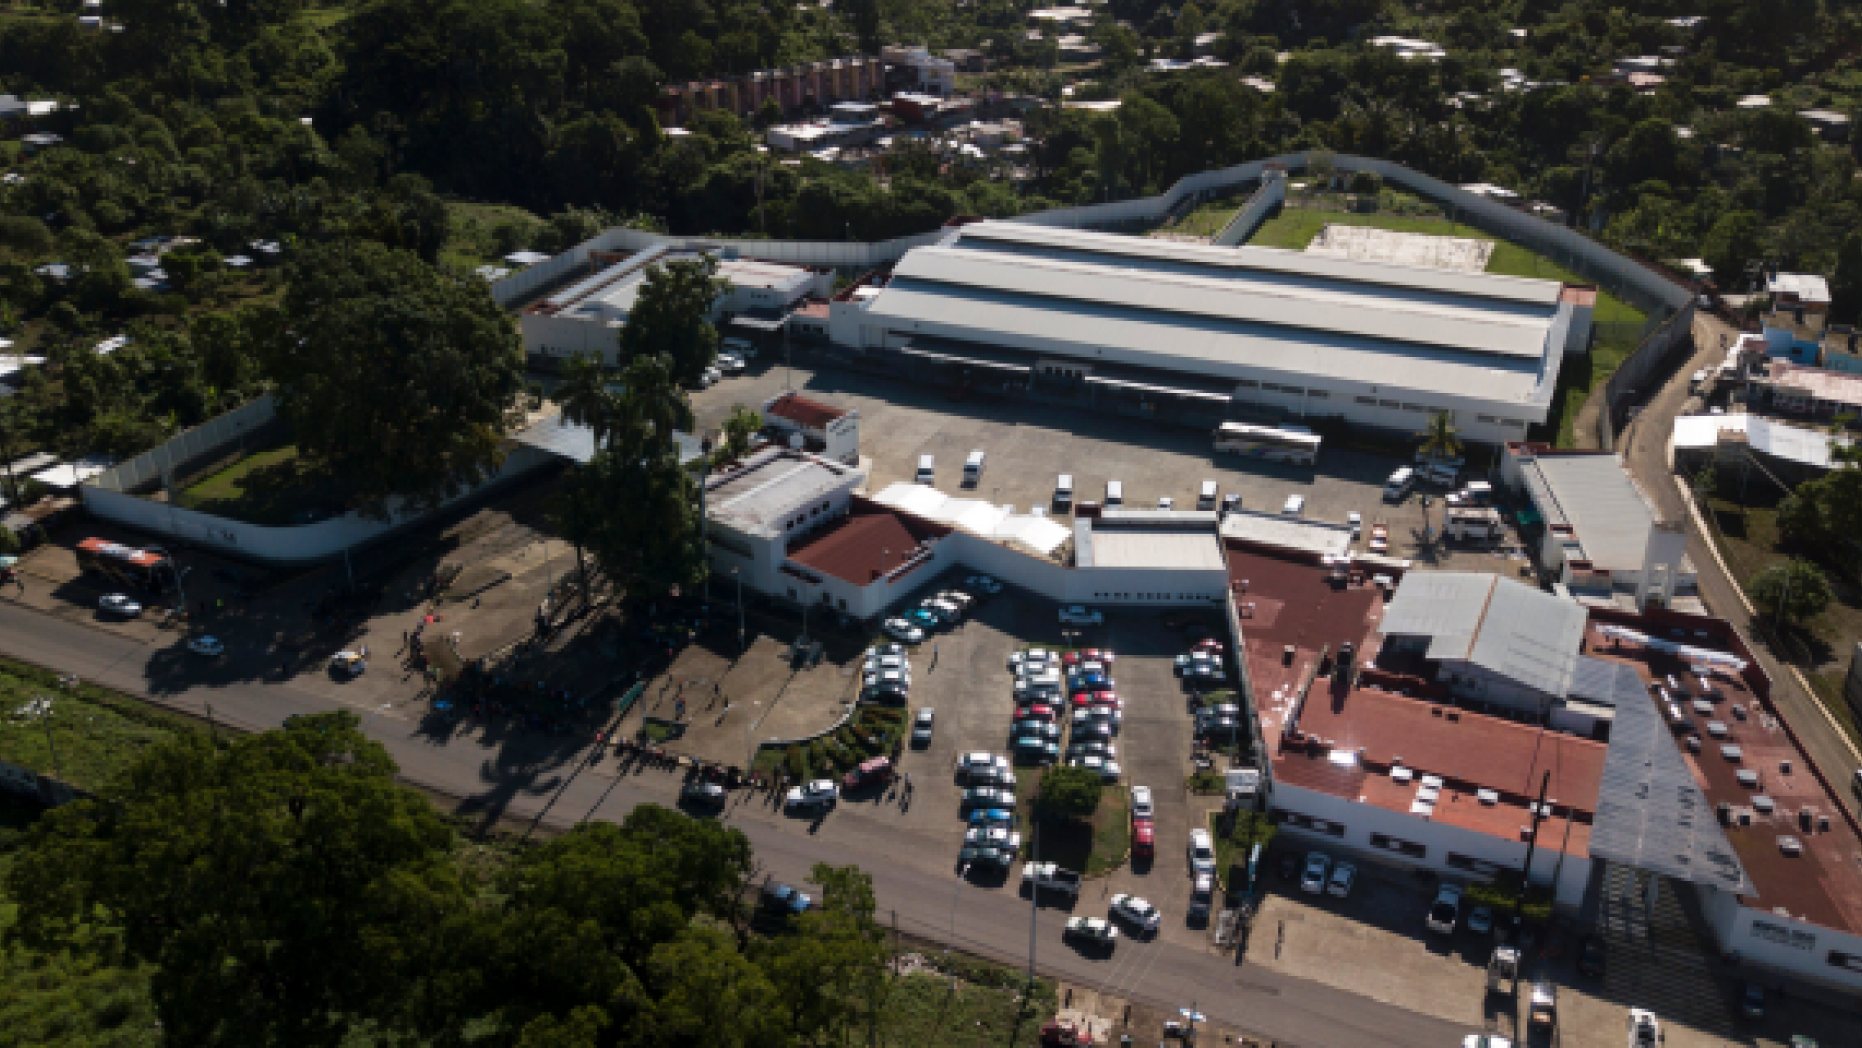 This June 1, 2019 photo, shows the Siglo XXI migrant detention center in Tapachula, Chiapas state, Mexico. As of late April there were more than 2,000 migrants in Siglo XXI, according to the commission, over double its 960 capacity. (AP Photo/Pedro Giron)